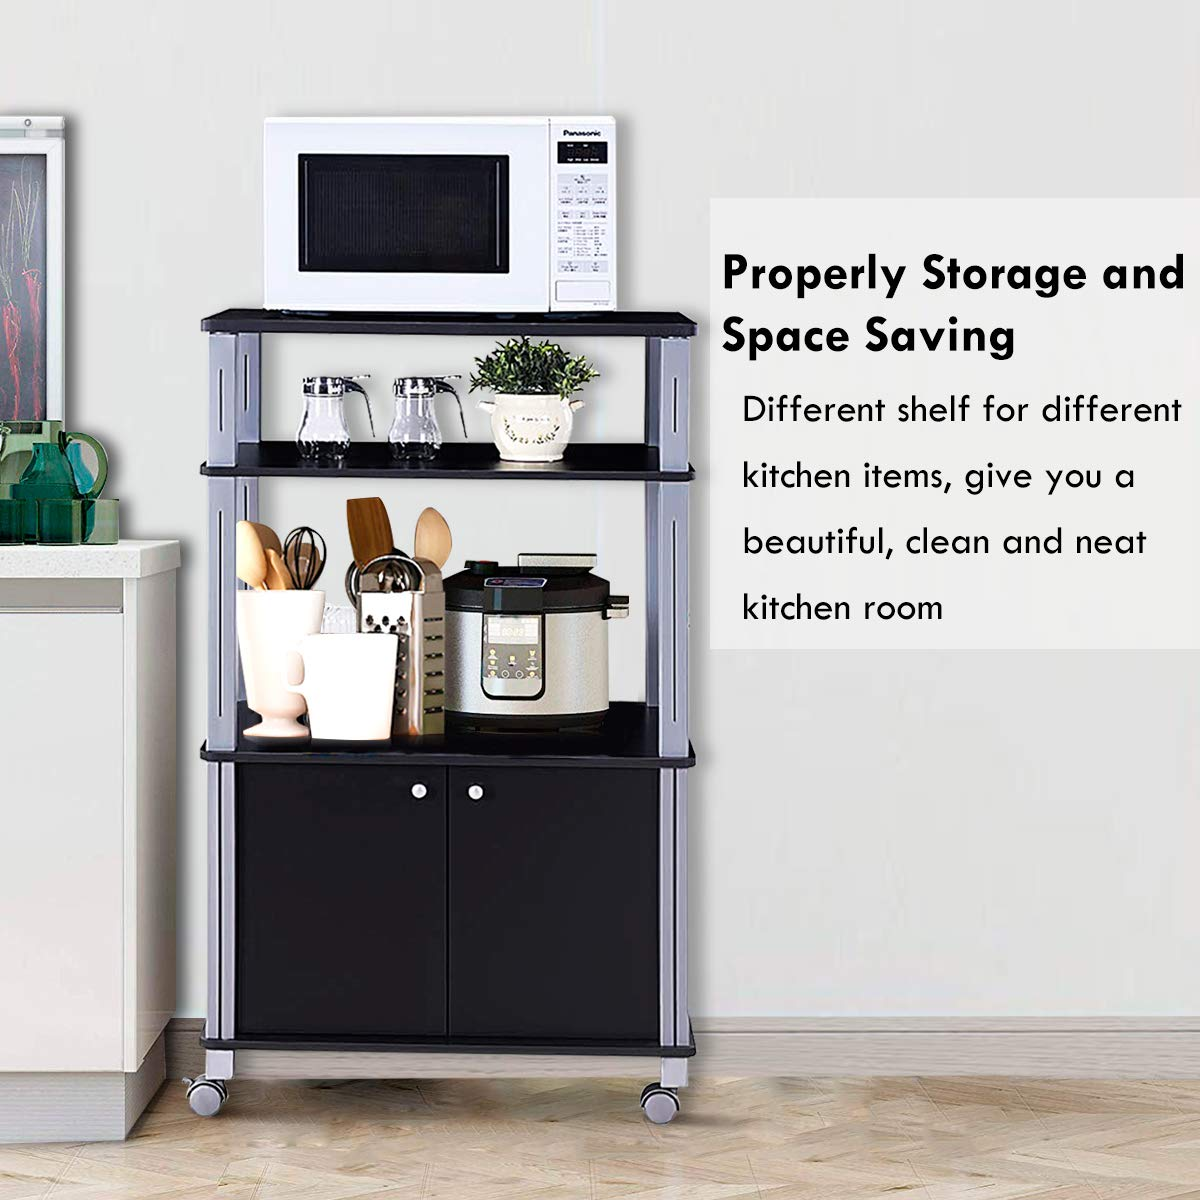 Giantex Rolling Kitchen Baker's Rack Microwave Oven Stand Utility Cart Multifunctional Display Shelf on Wheels with 2-Tier Shelf and Cabinet Spice Organizer for Kitchen Dining Room Furniture (Black) by Giantex (Image #3)